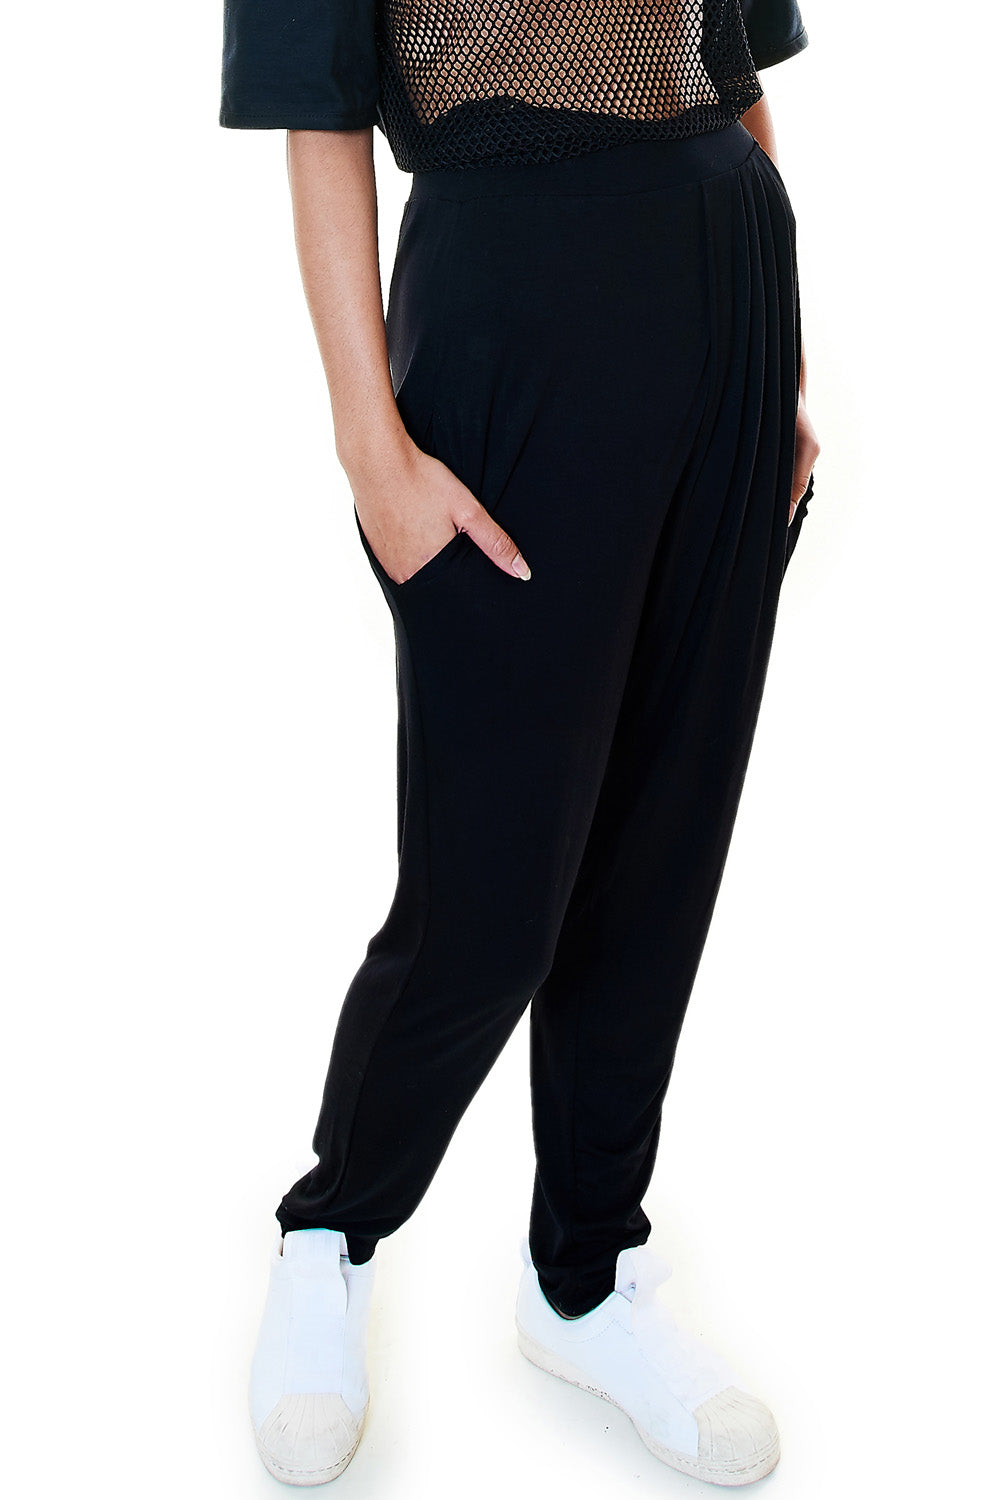 Black Pleated Pants - casacomostyle